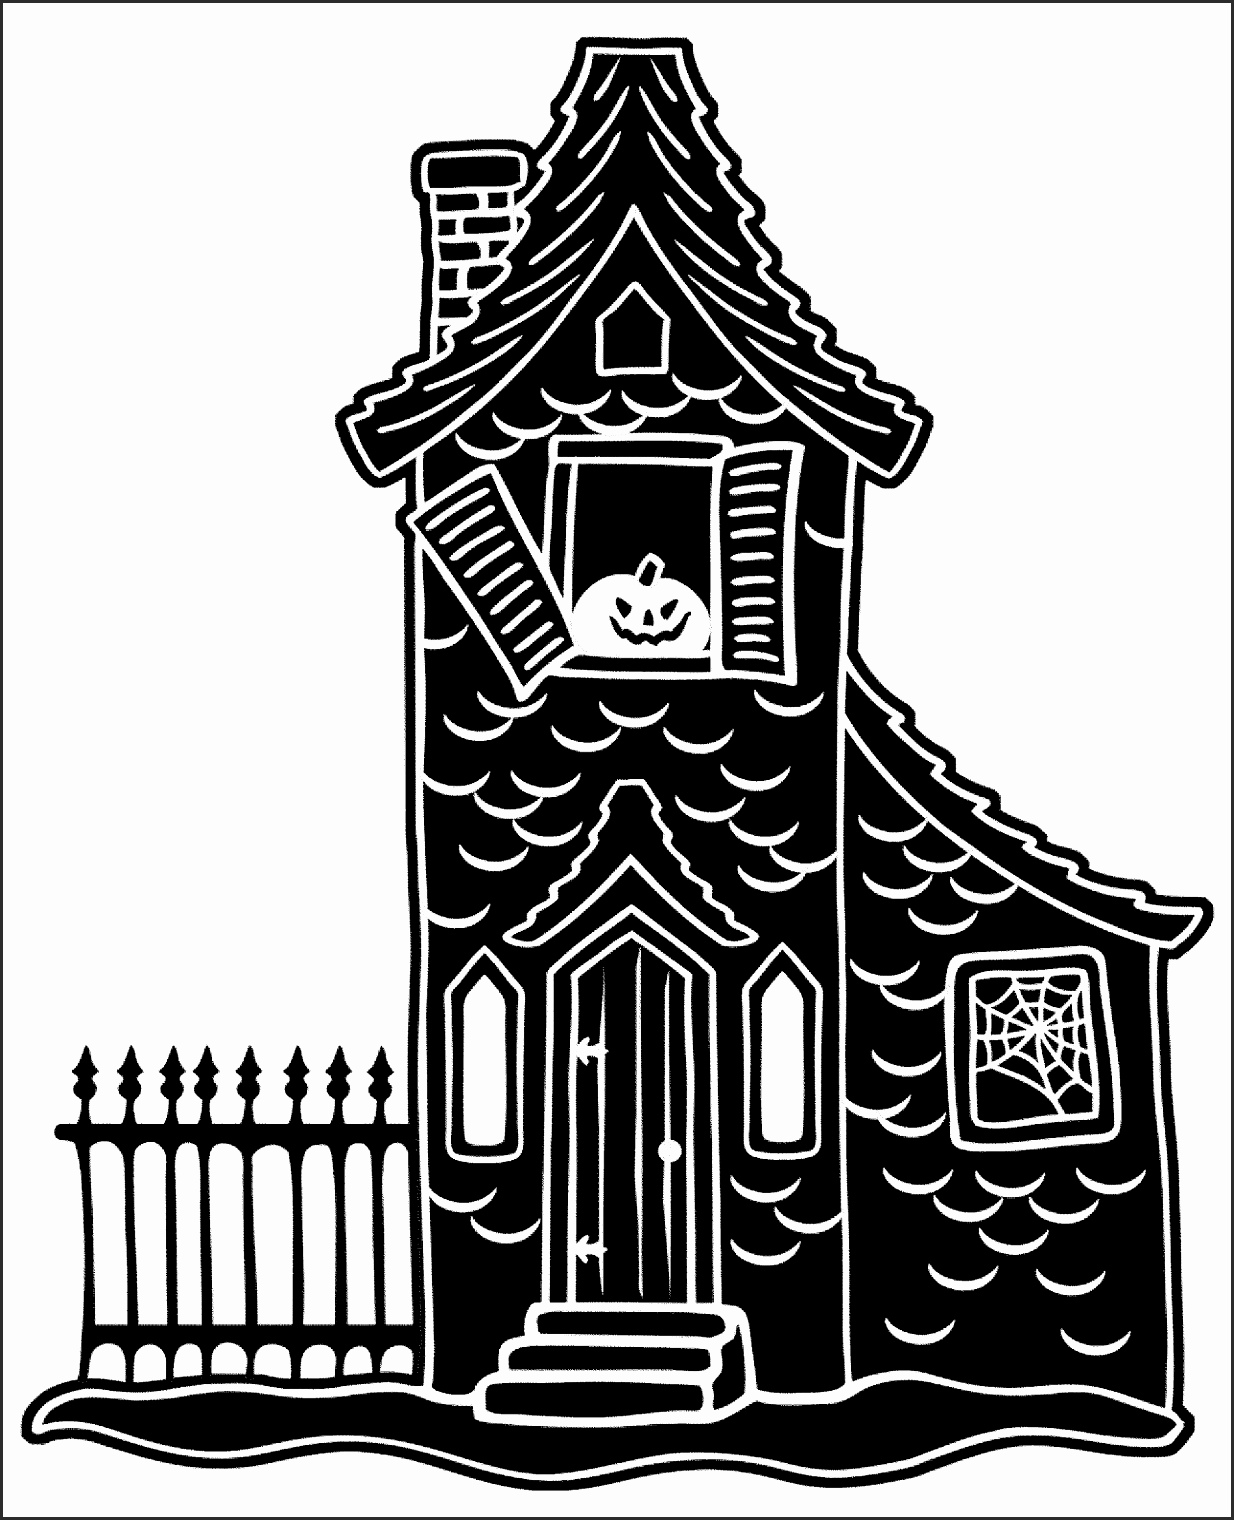 1234x1520 Drawings Of Haunted Houses Oux7g Inspirational Drawn Haunted House